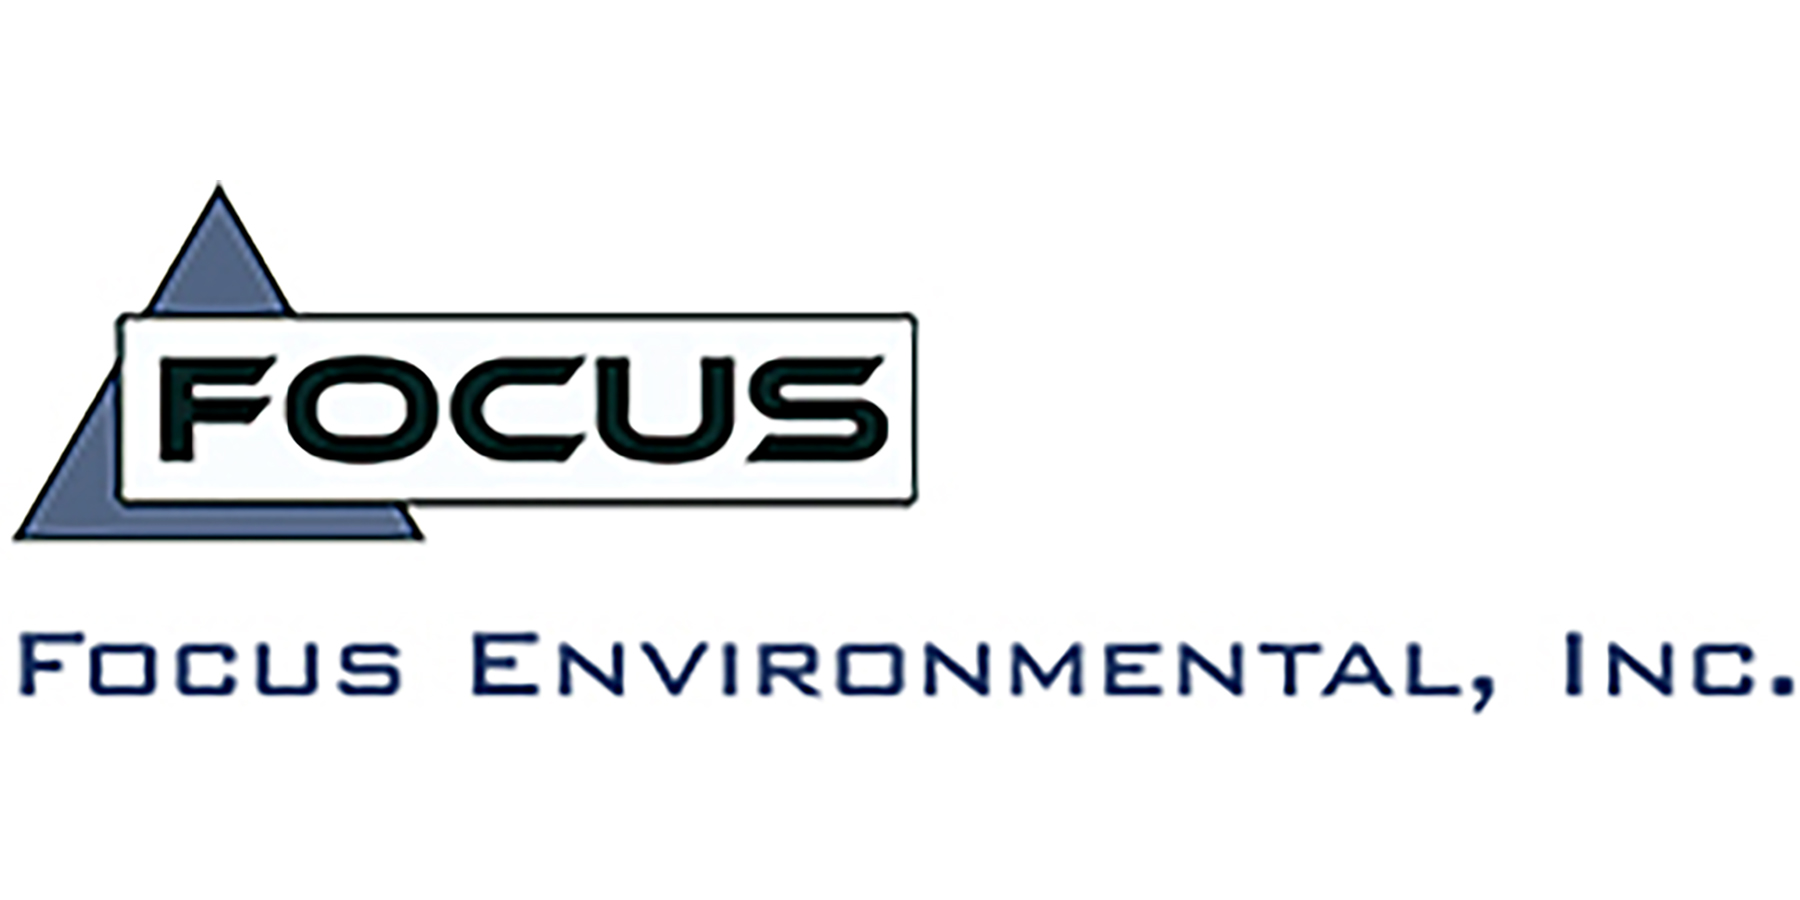 Focus Environmental, Inc